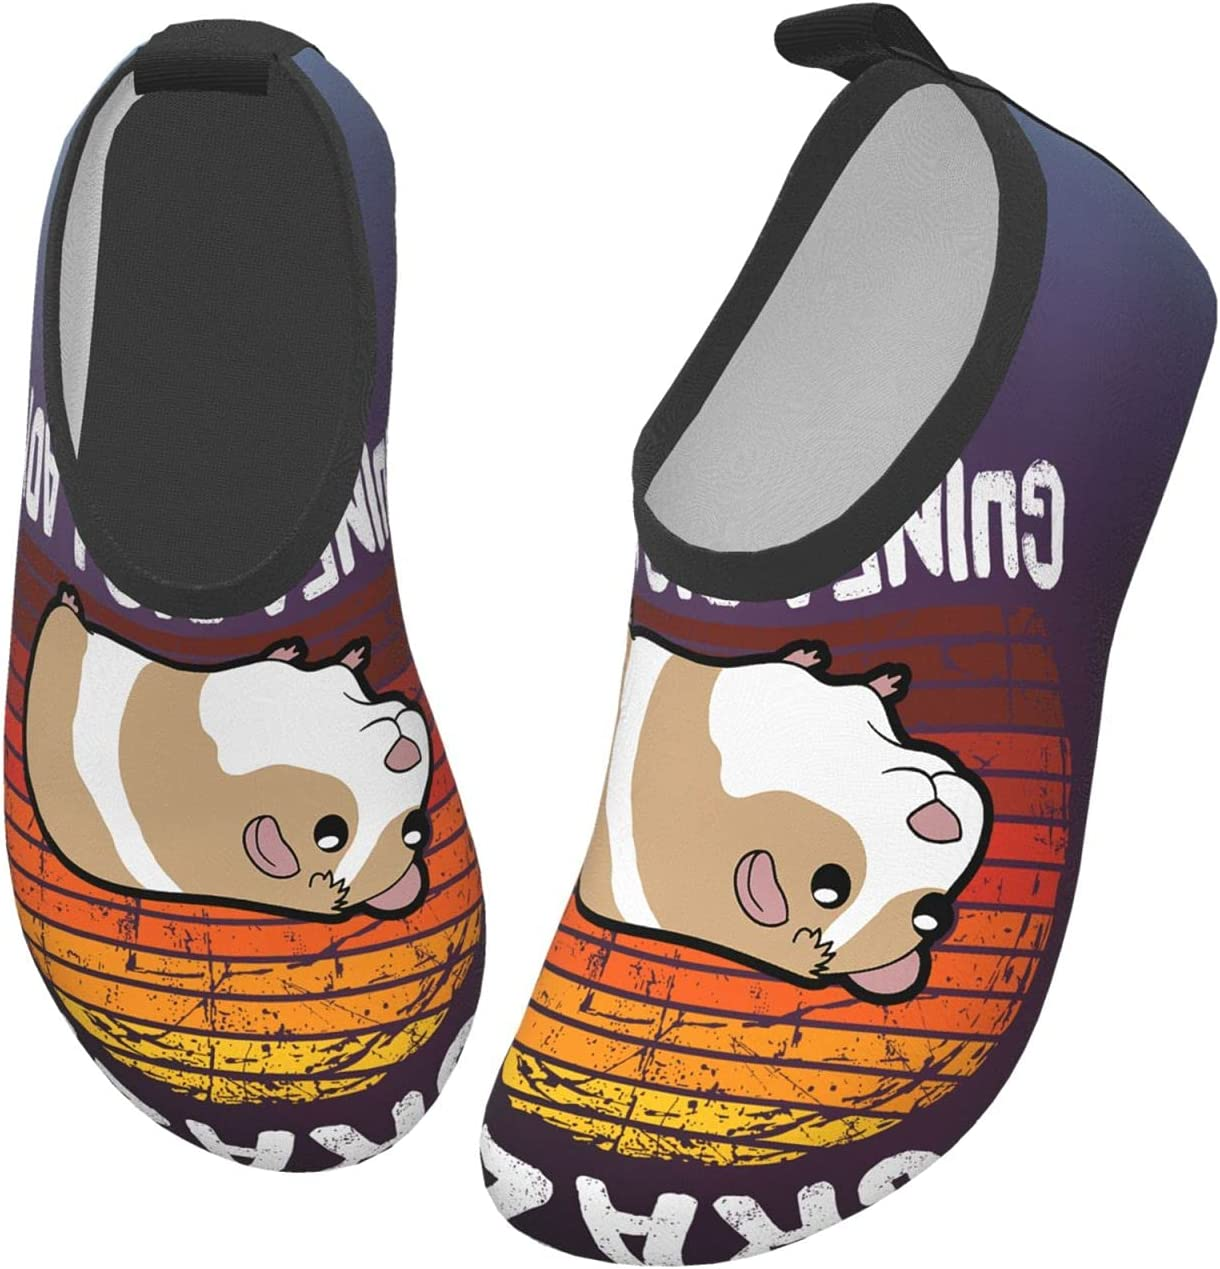 wobzfrok National products Cute Guinea Pig Kids Water Outlet sale feature Toddler Girls Shoes Non Boys